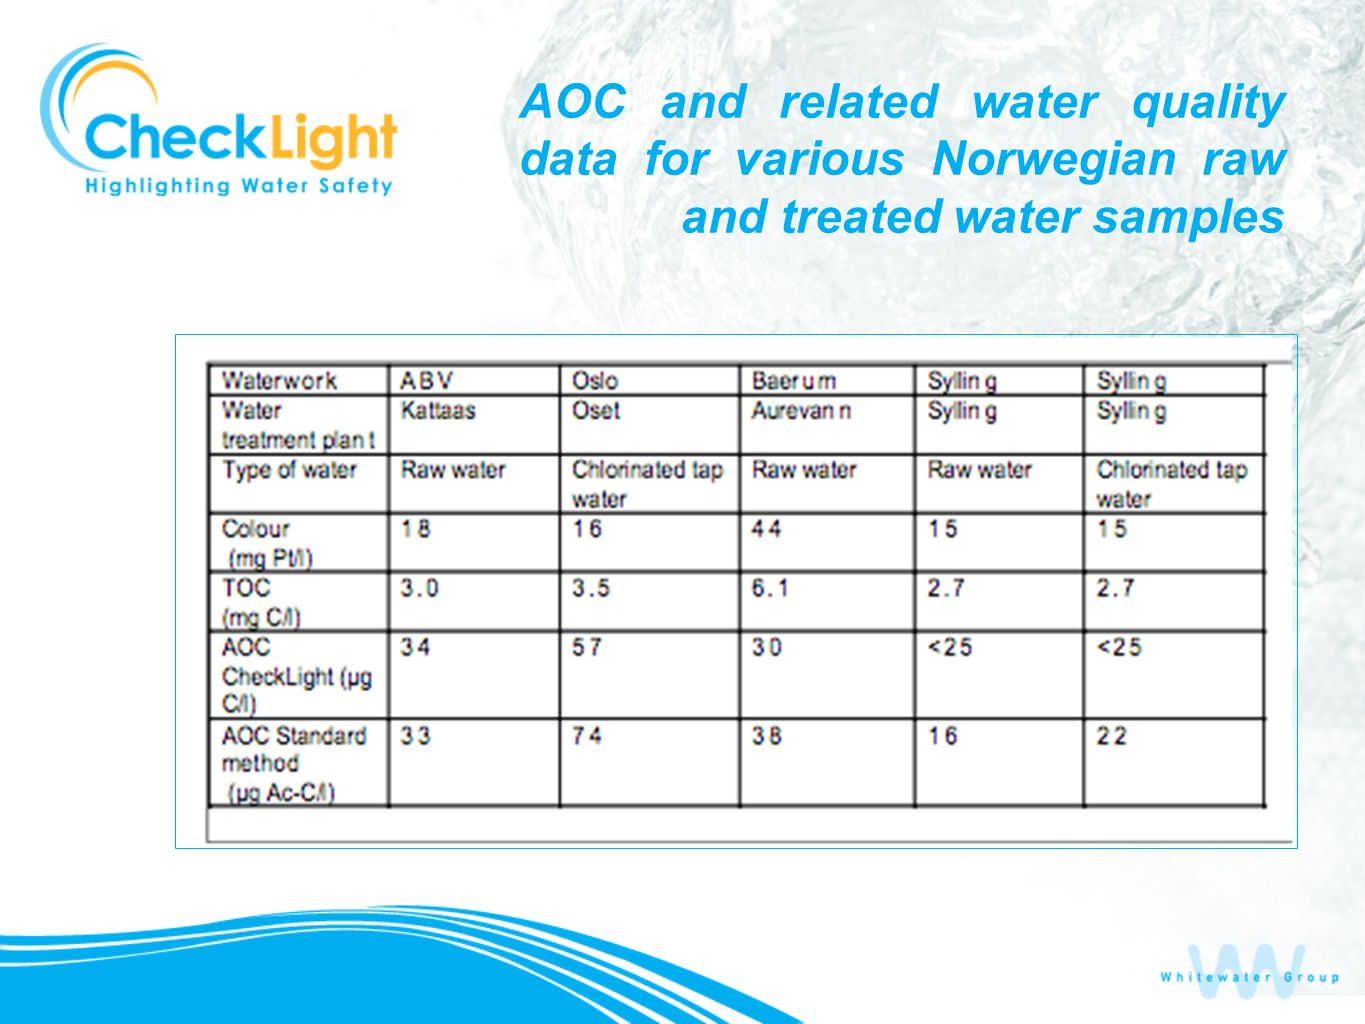 AOC and related water quality data for various Norwegian raw and treated water samples